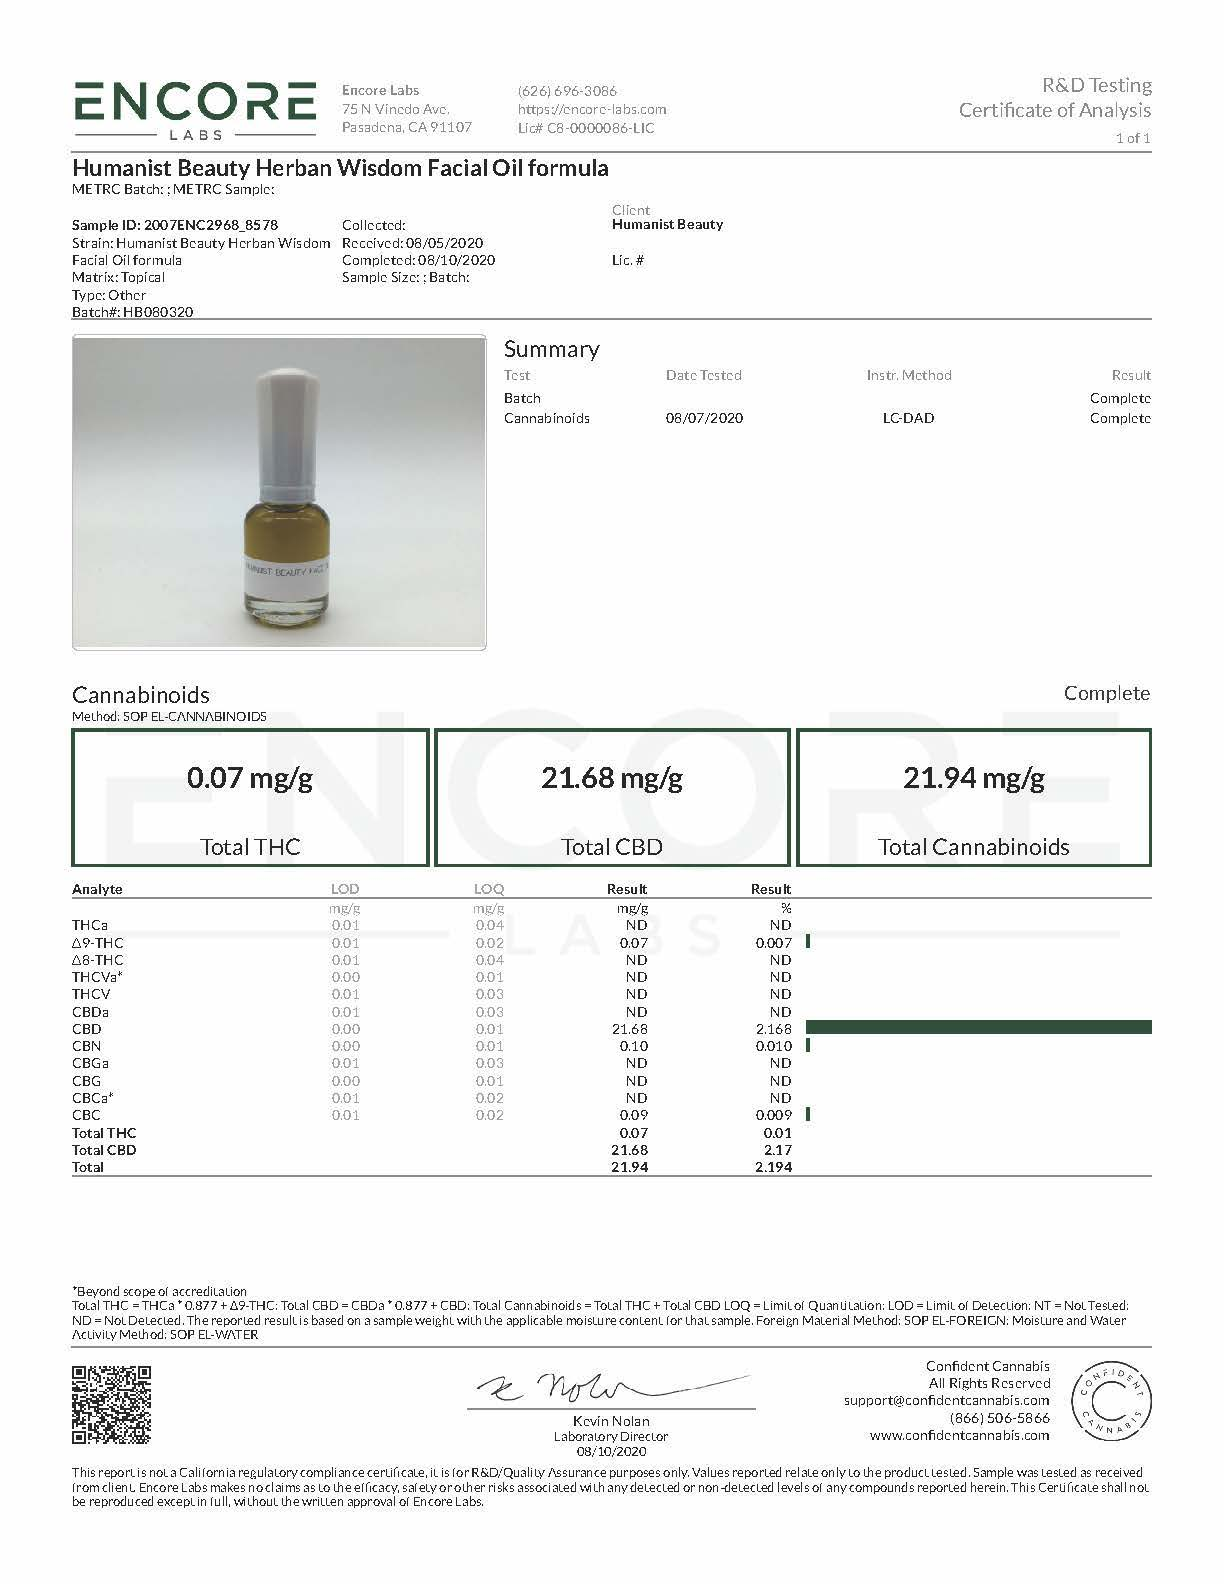 Humanist Beauty Herban Wisdom Facial Oil CBD COA